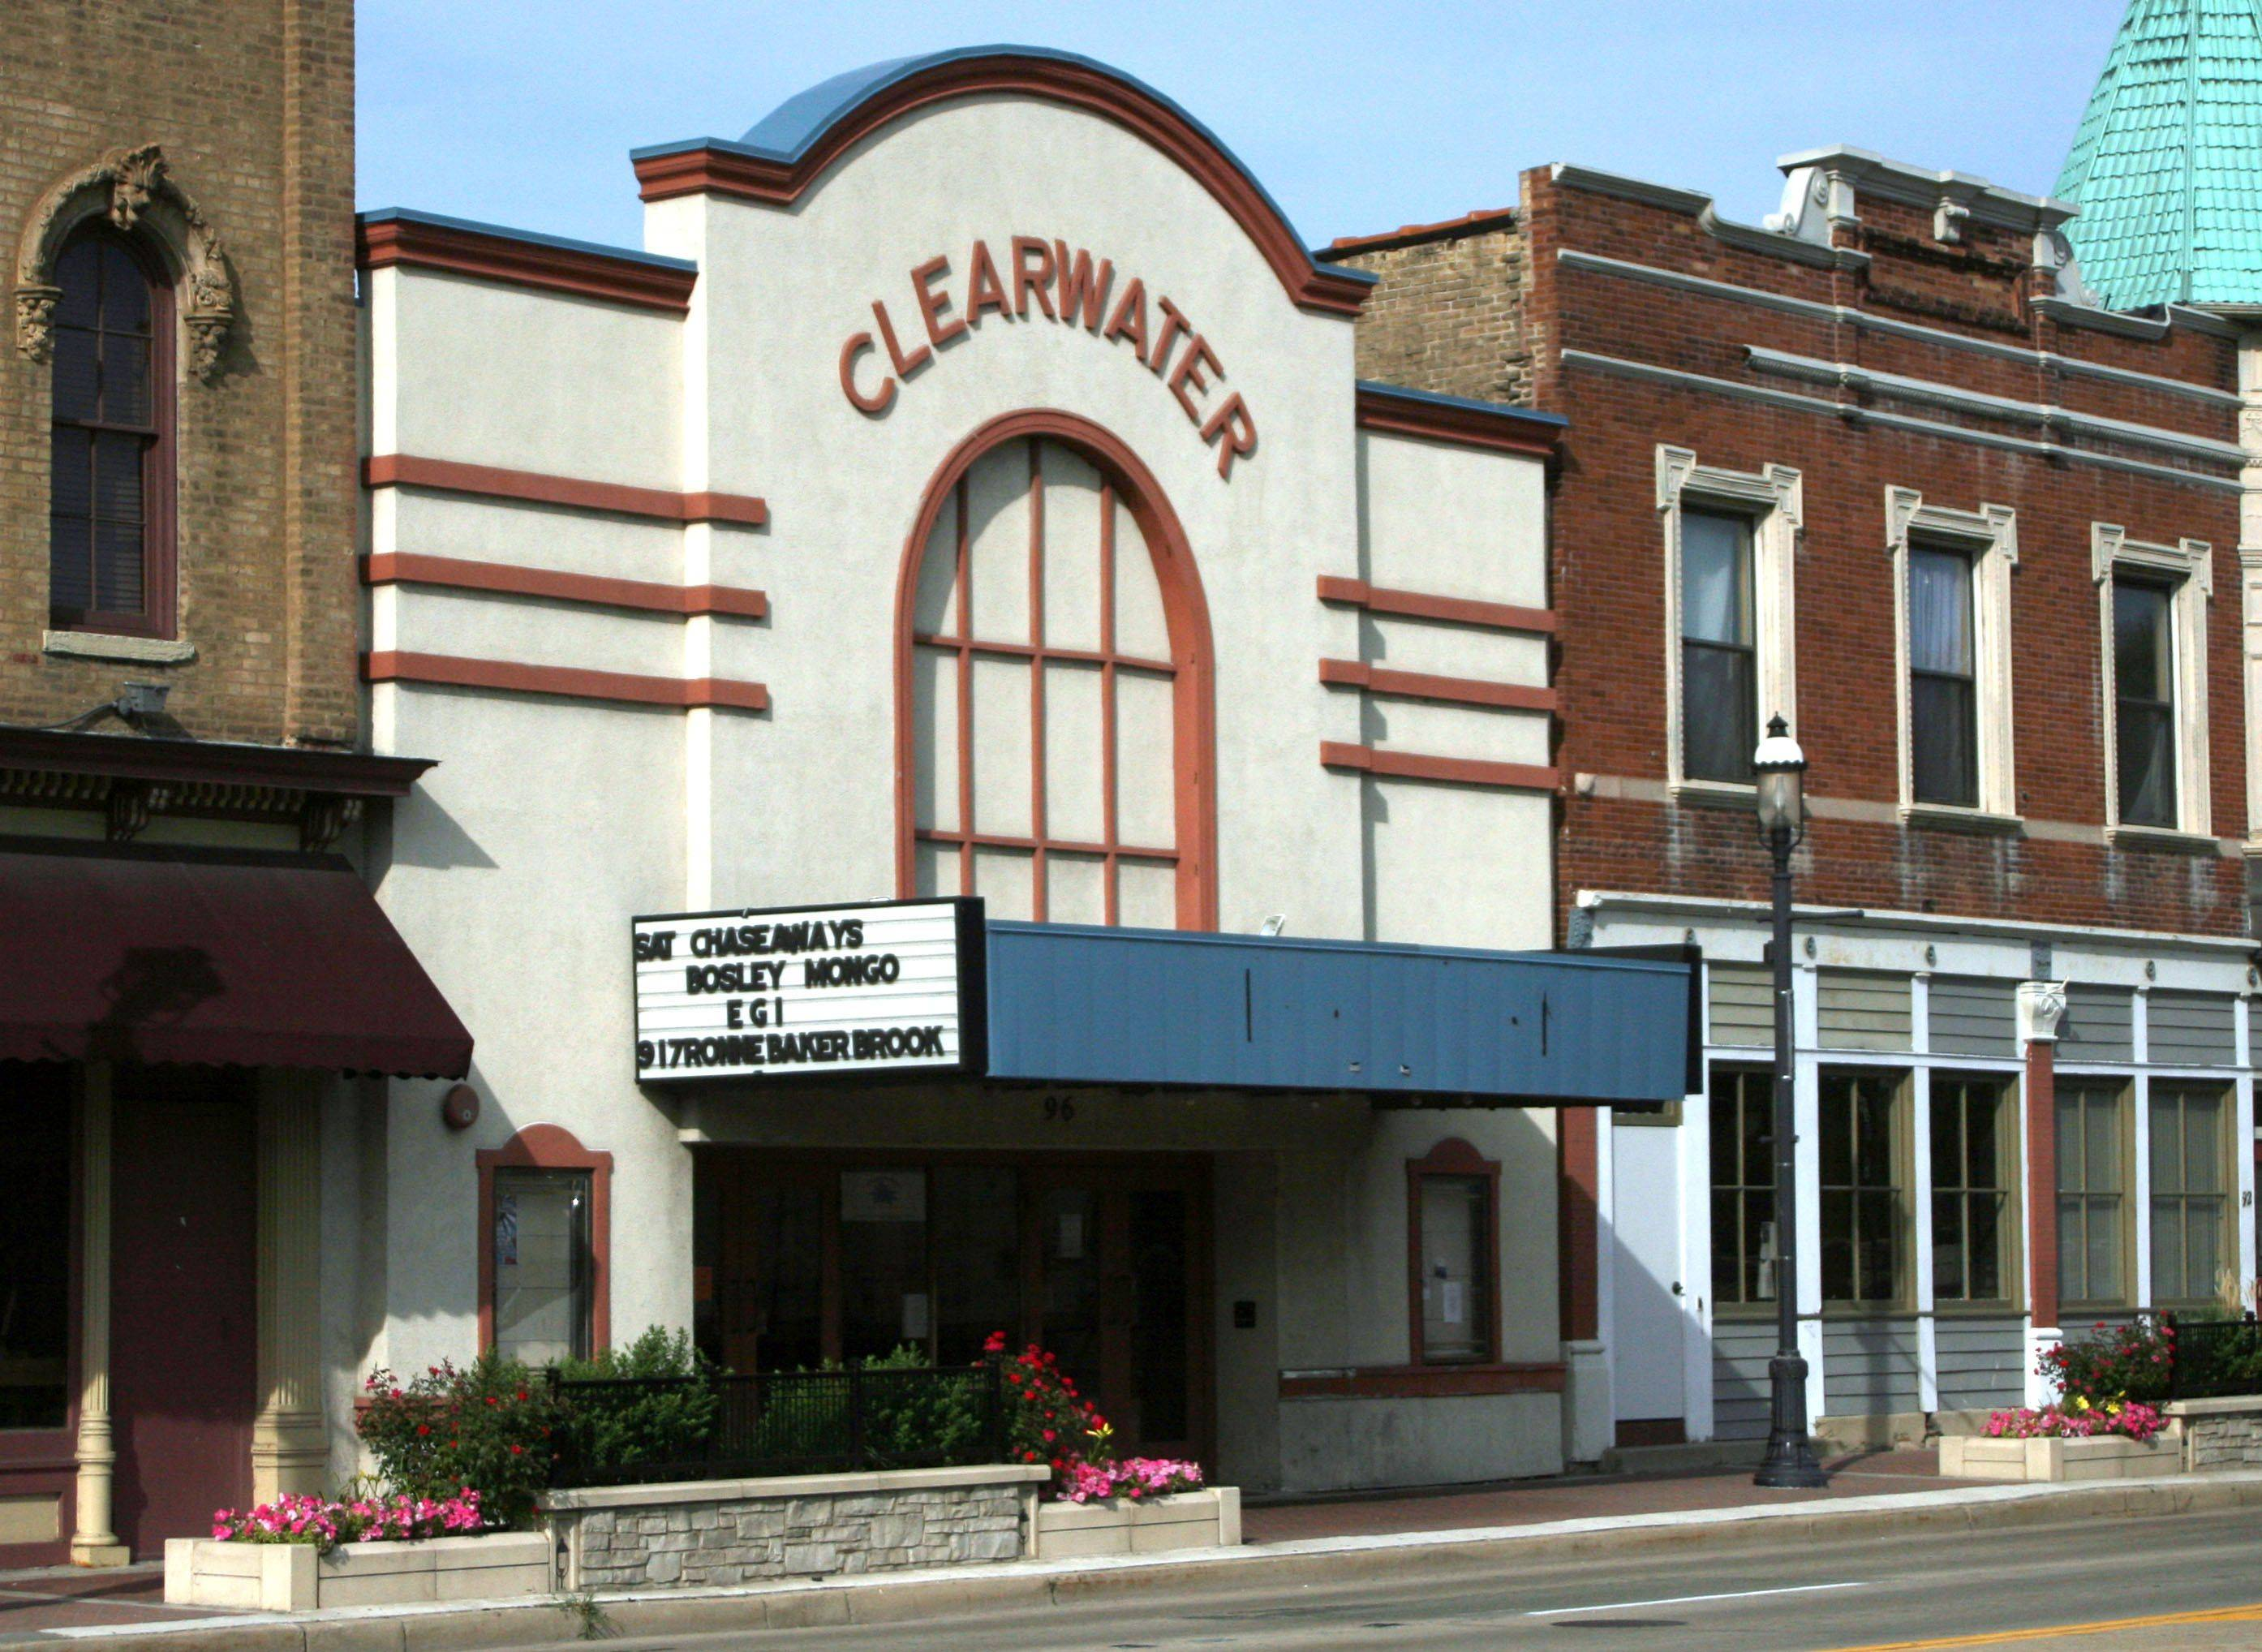 West Dundee officials have closed the Clearwater Theater for serving alcohol without a state liquor license for more than a year. As a result, the theater has canceled its September performances.